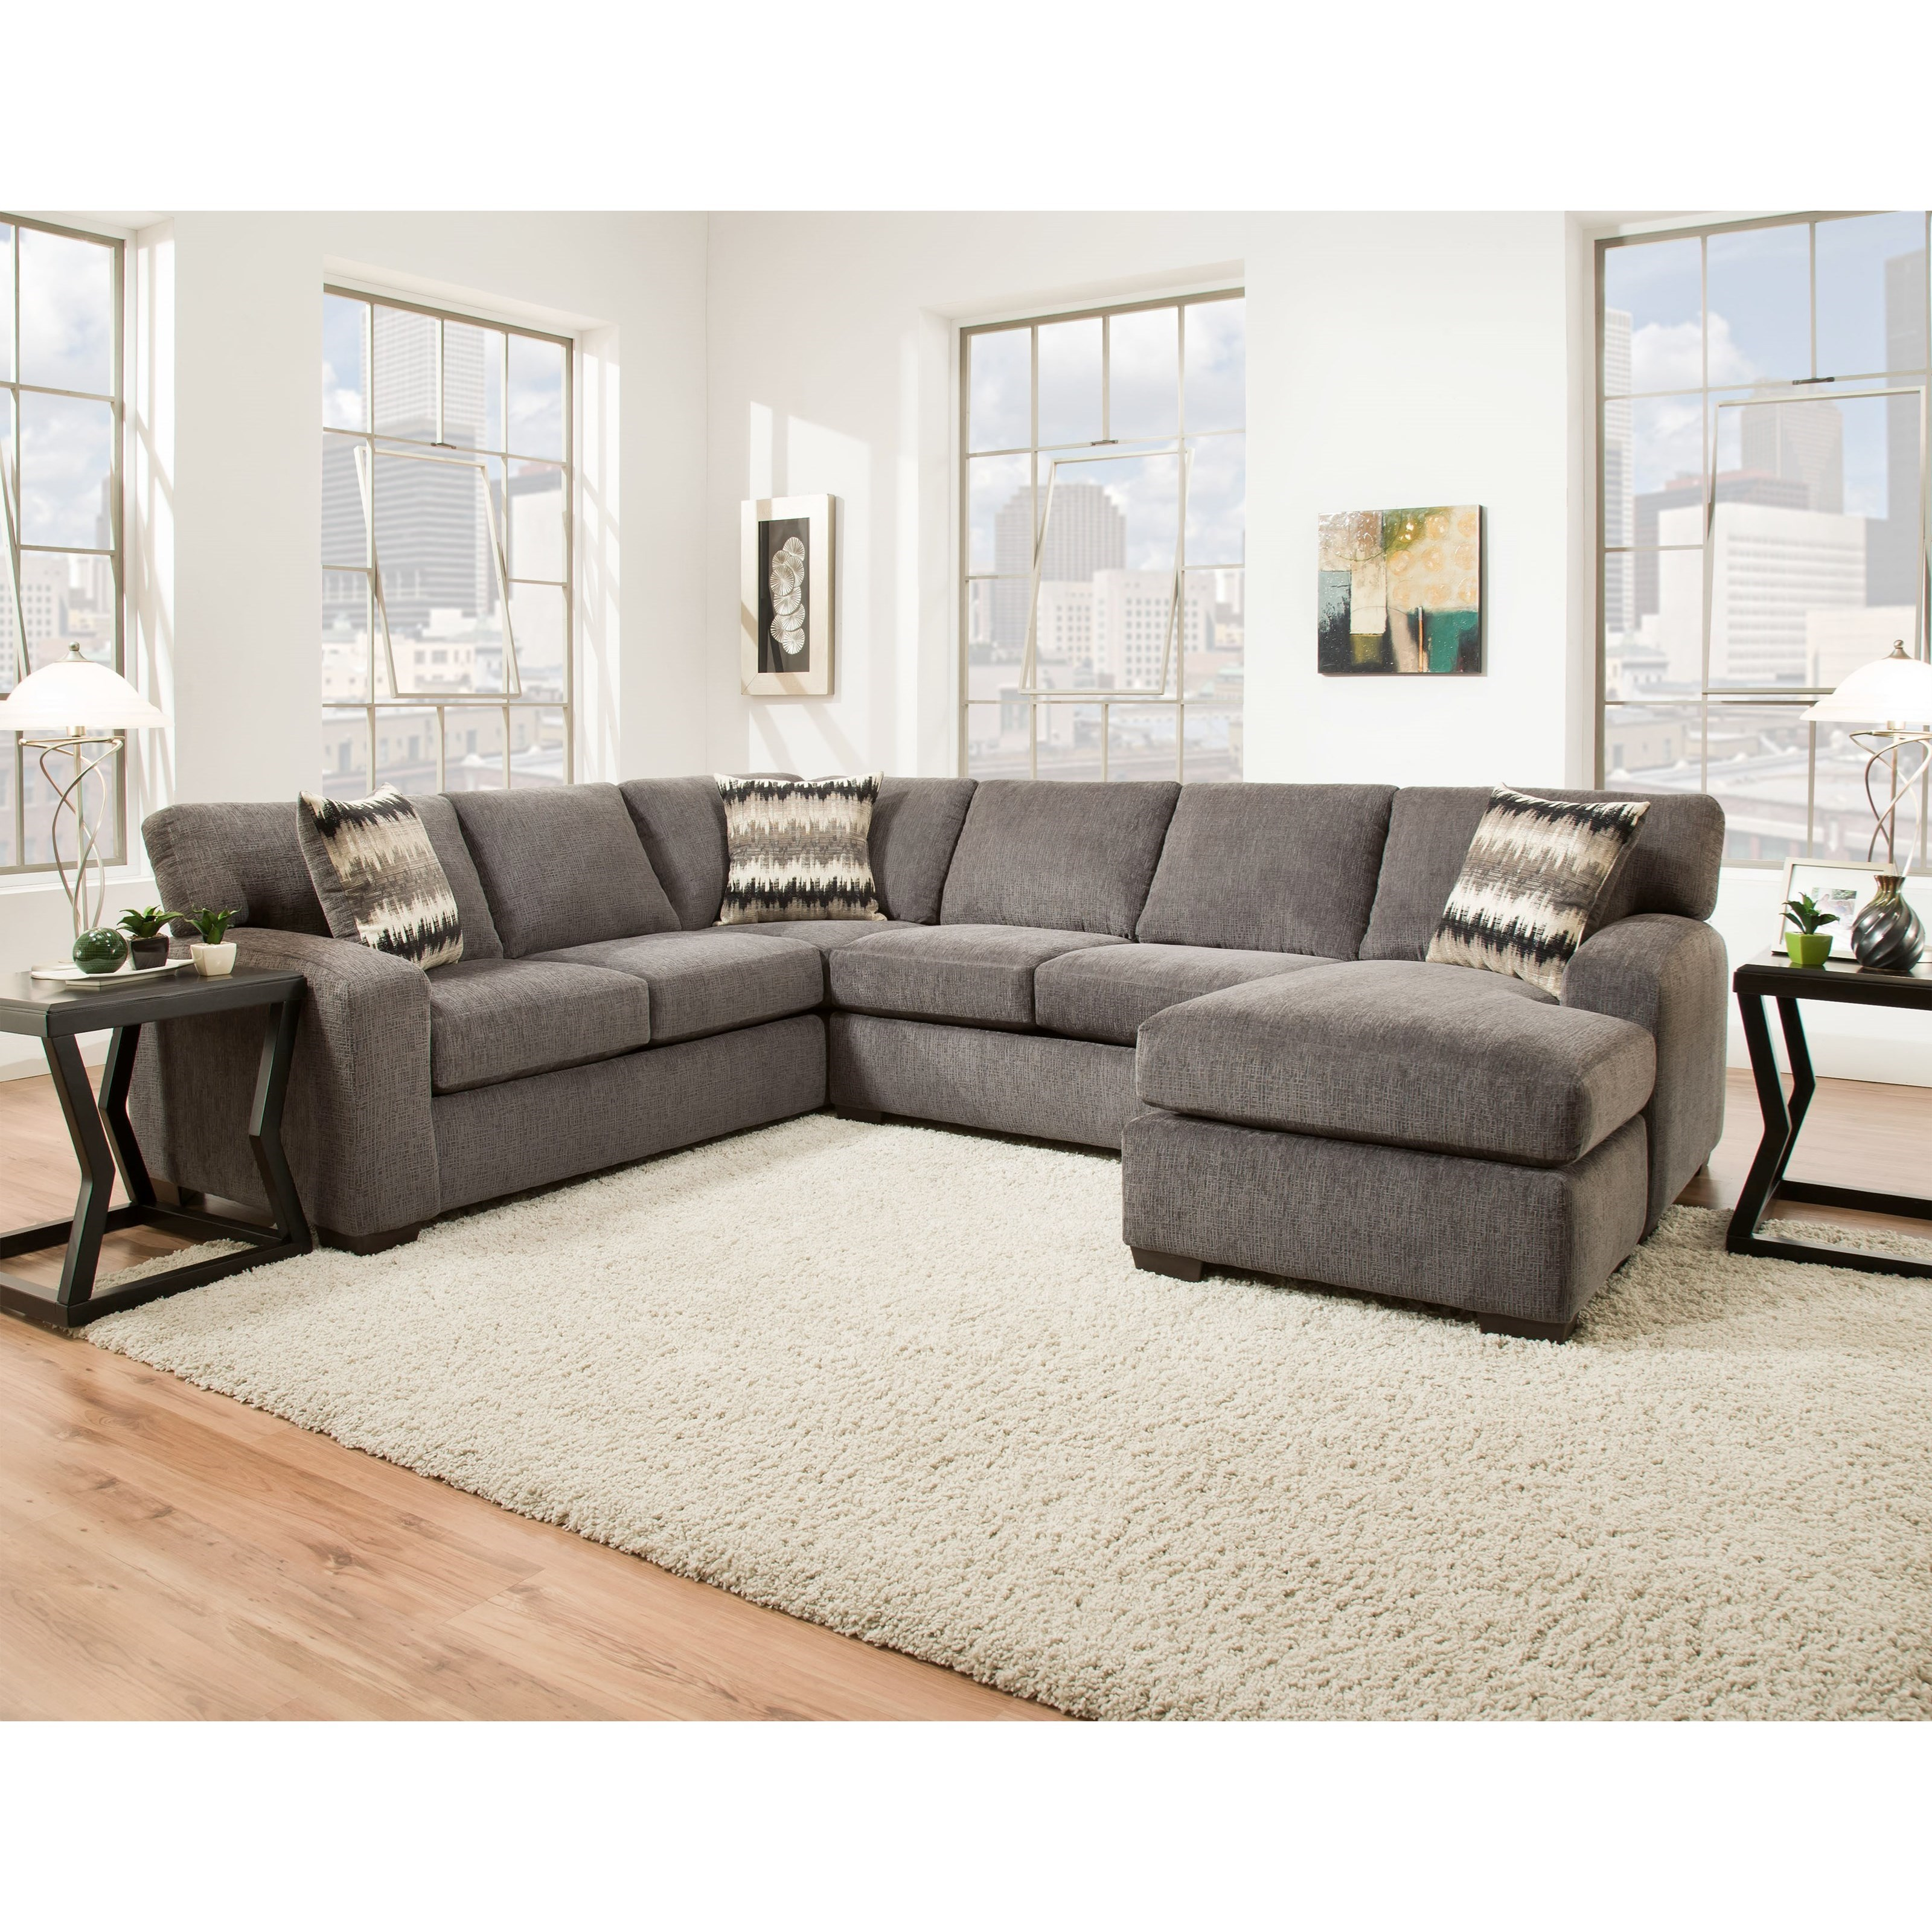 american furniture living room sectionals decorating brown leather 5250 sectional sofa seats 5 fair